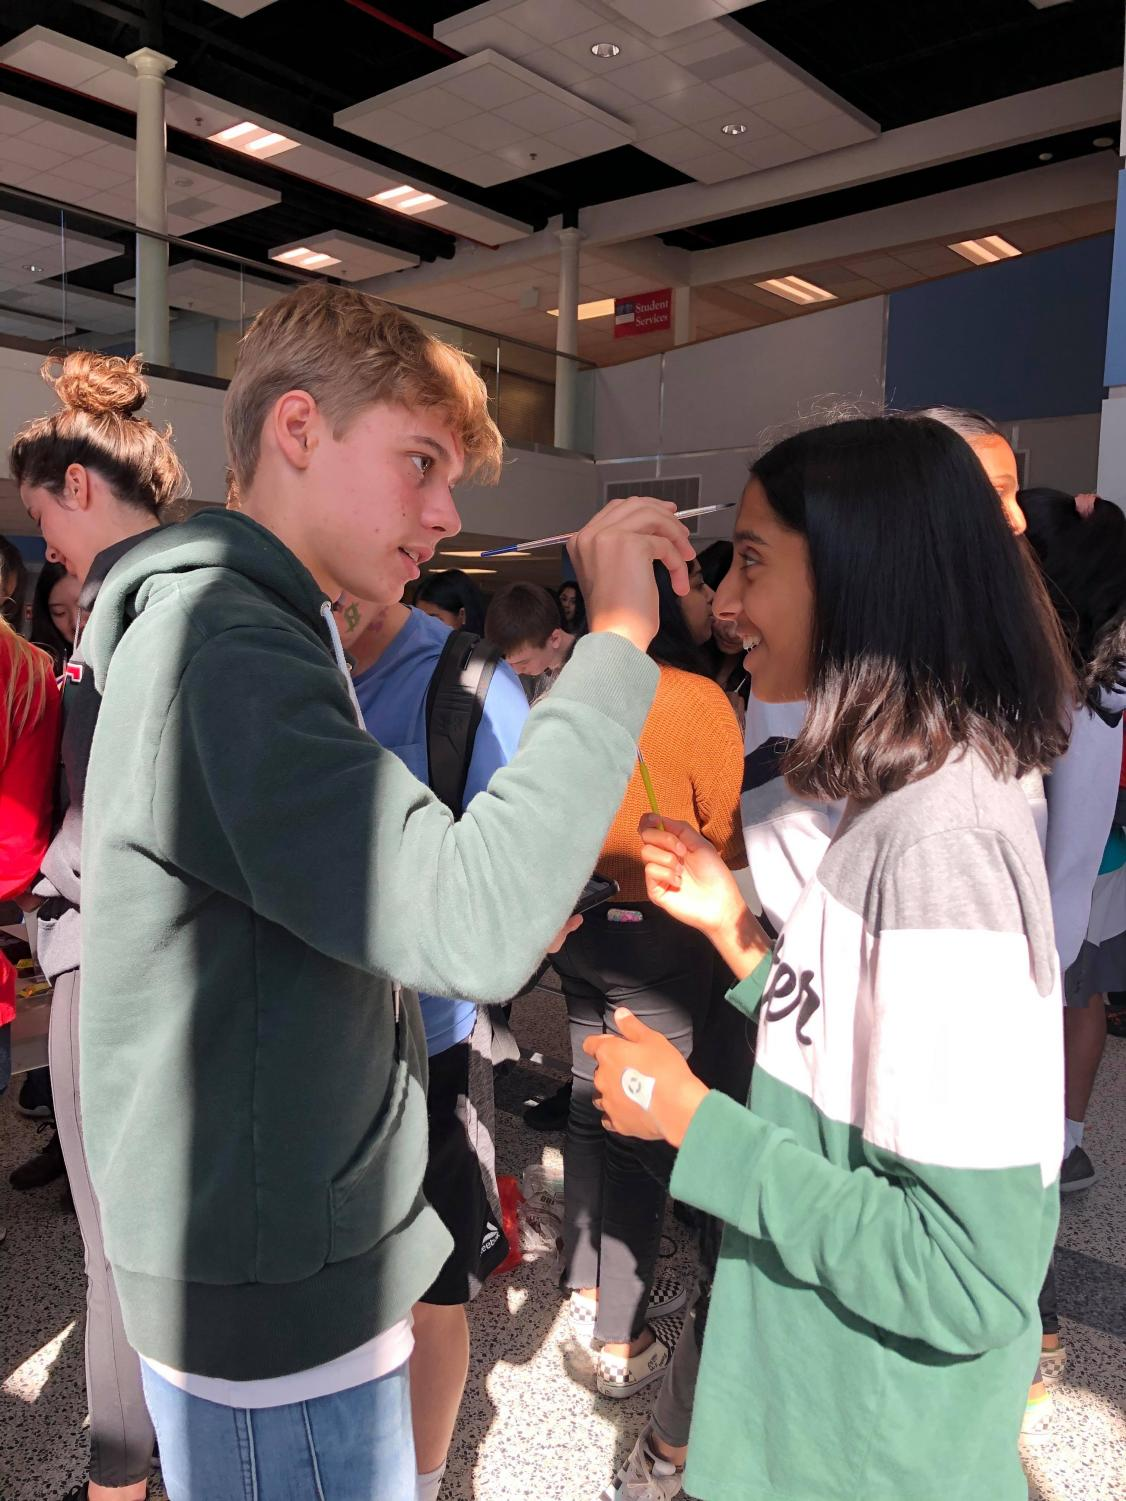 Freshman Jean Lavigne Du Cadet paints freshman Nirja Divekar's face during NAHS's face painting event in Nobel Commons during JLC.